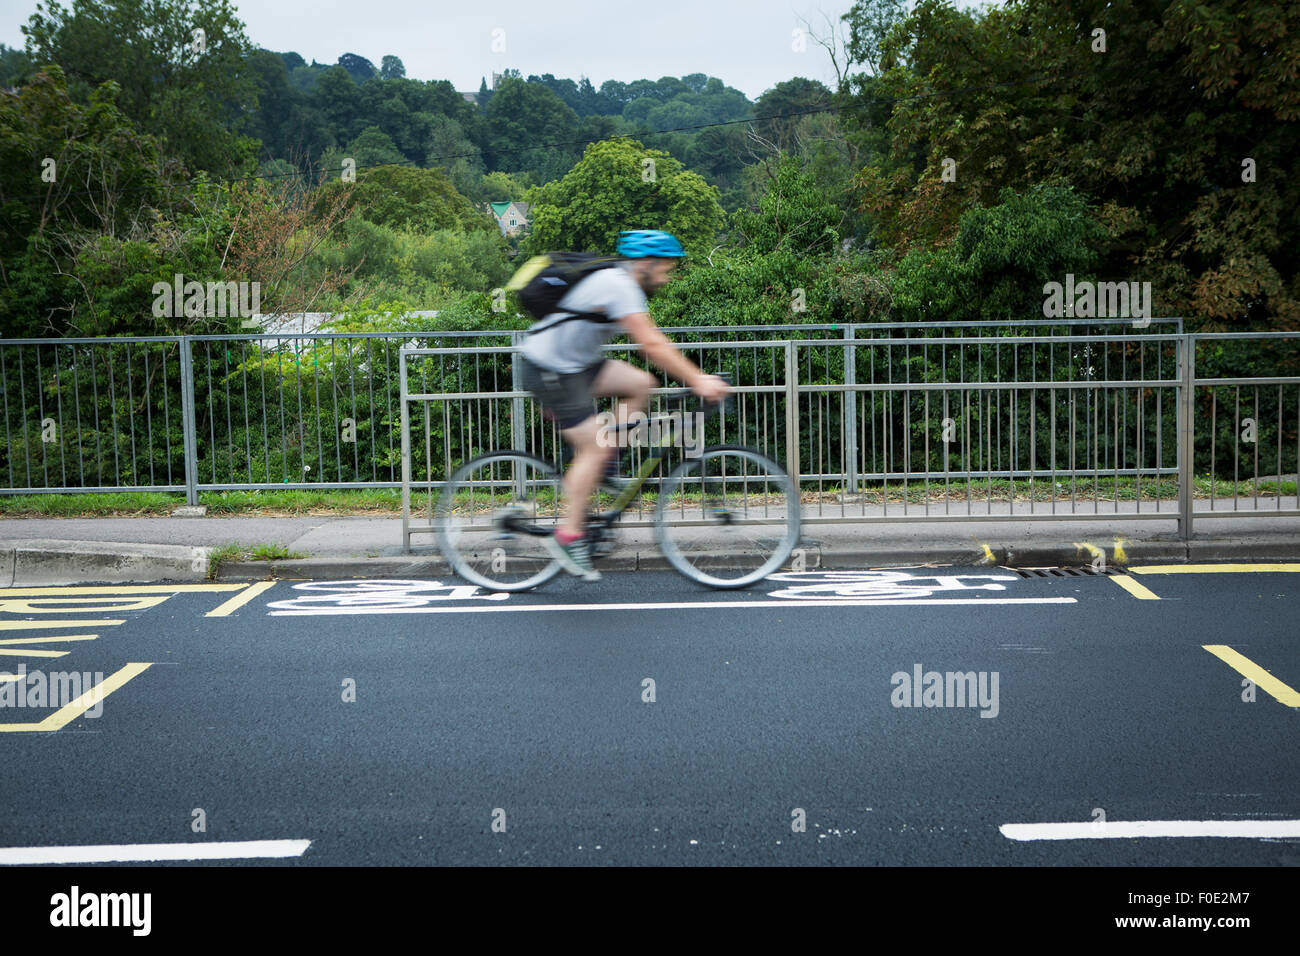 Stroud, UK. 11th Aug, 2015. Britain's shortest cycle lane is painted on a newly tarmacced road between two school - Stock Image